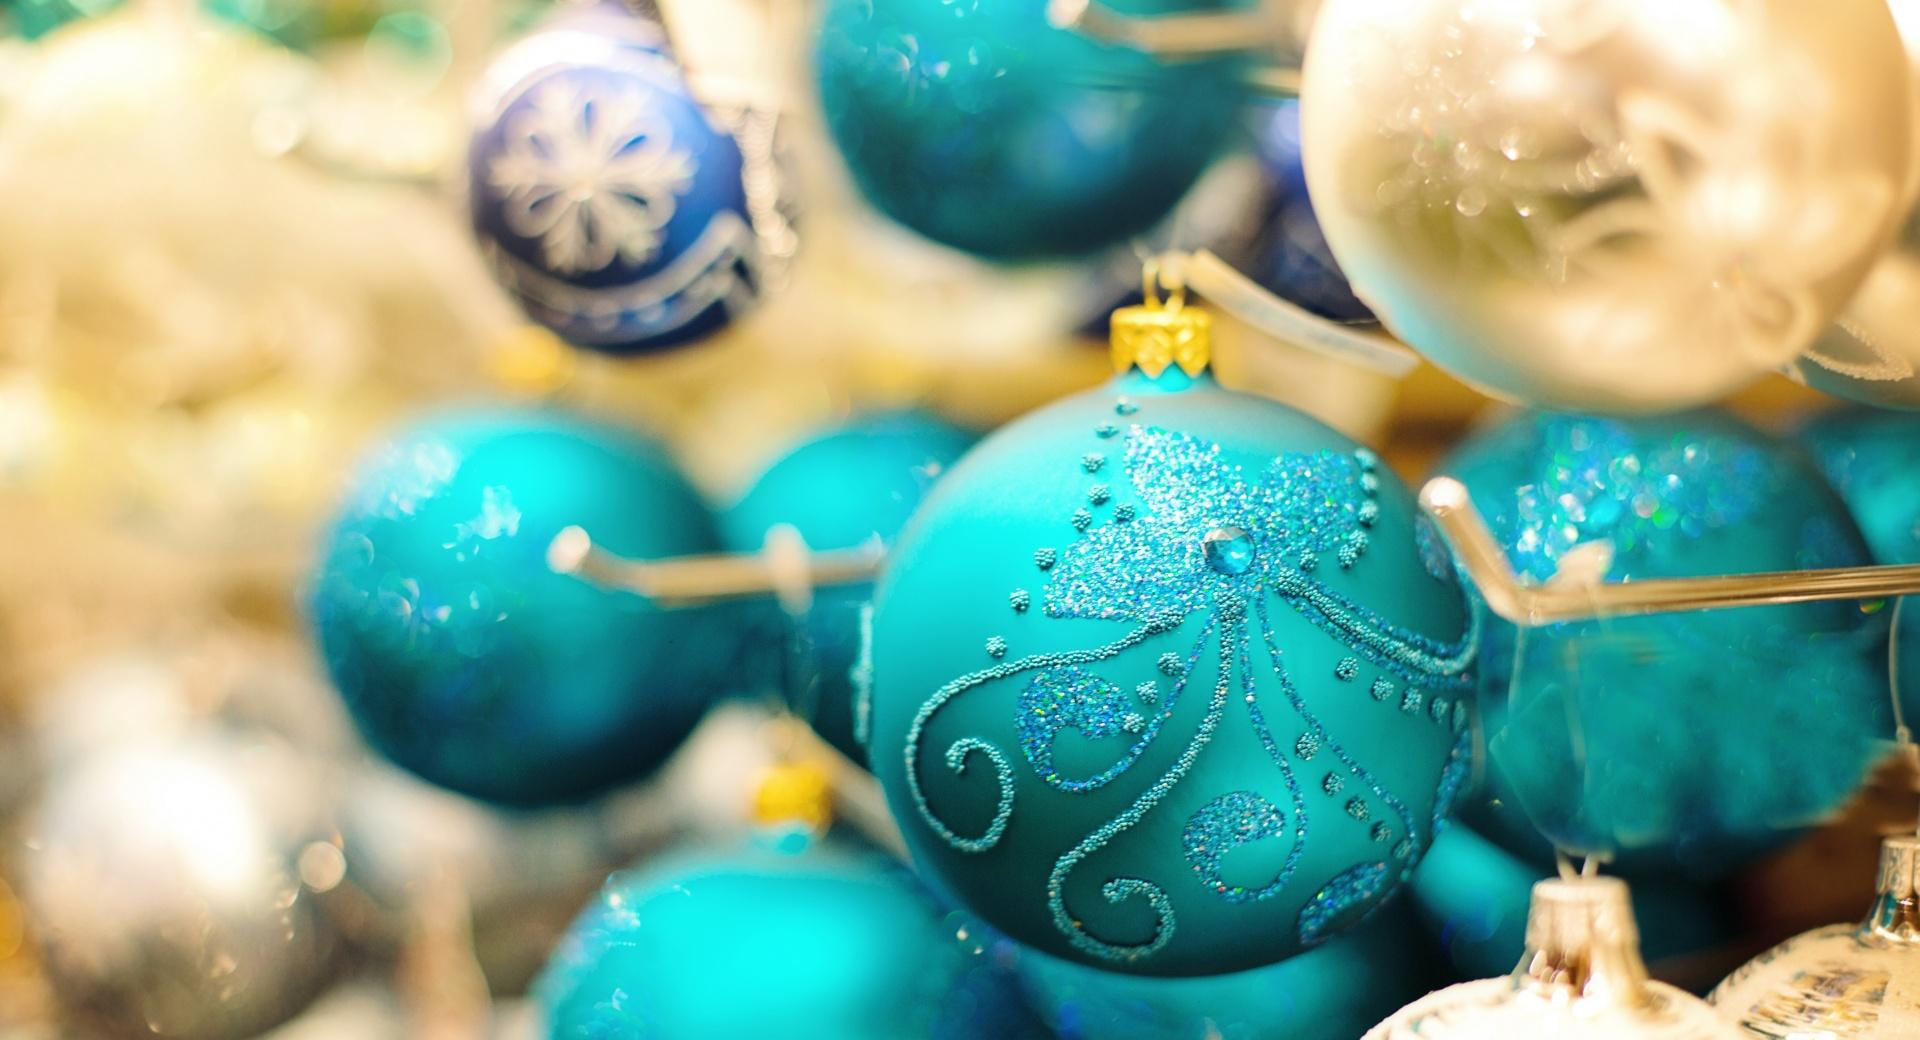 New Year Decorations wallpapers HD quality